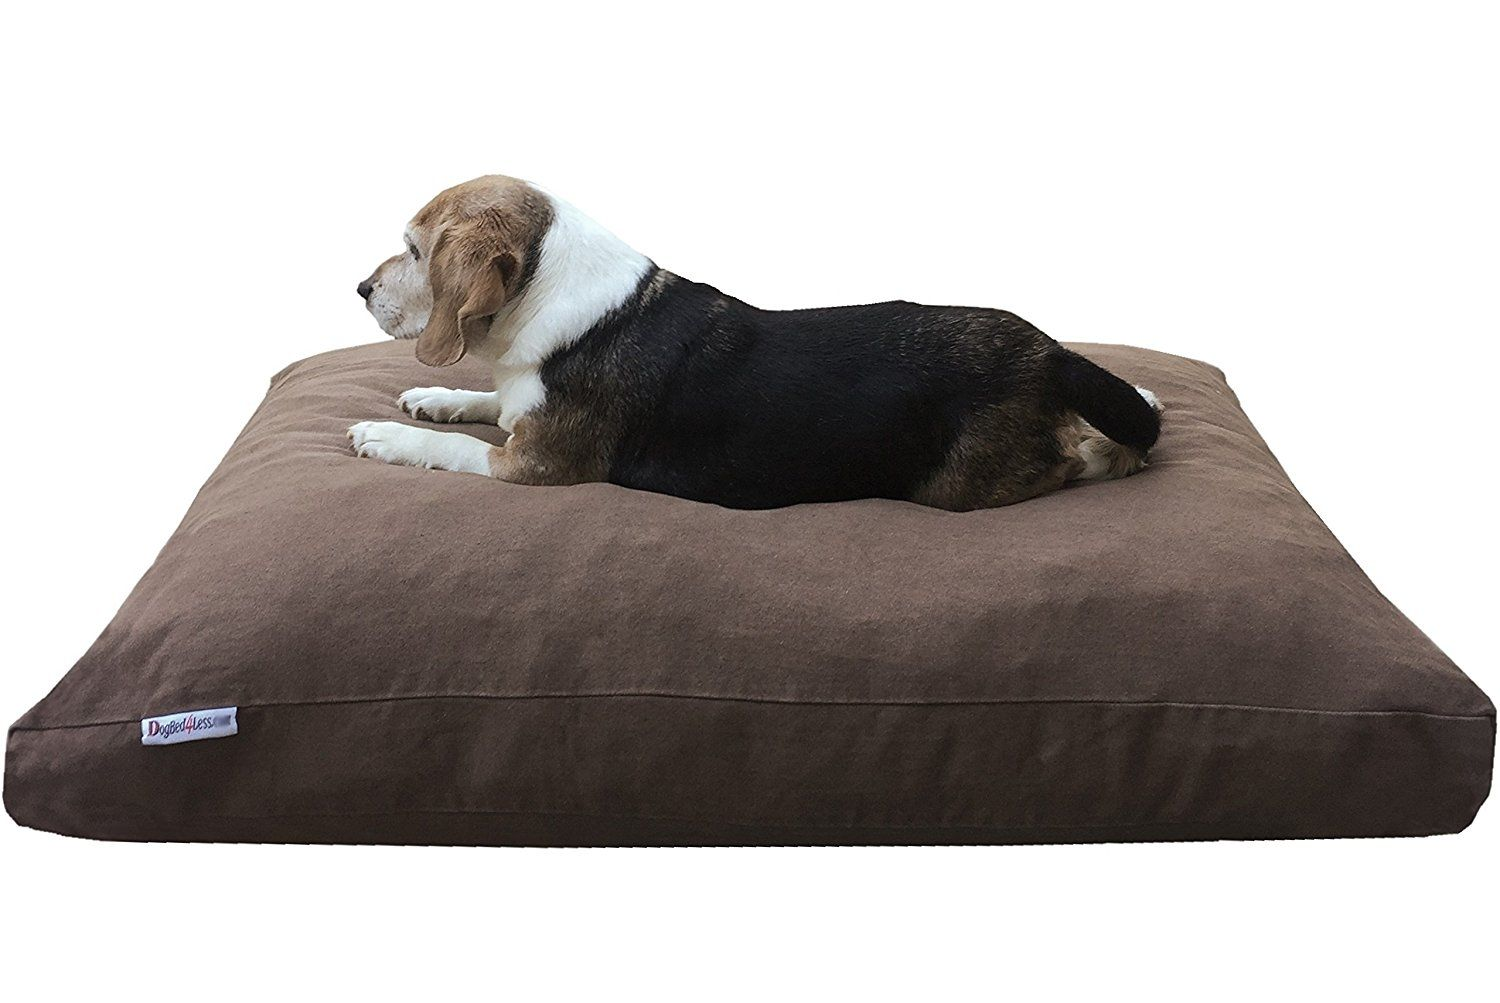 Premium Durable Orthopedic Shredded Memory Foam Dog Bed Pillow With Waterproof Internal Liner And Strong External Dog Pillow Bed Covered Dog Bed Cool Dog Beds